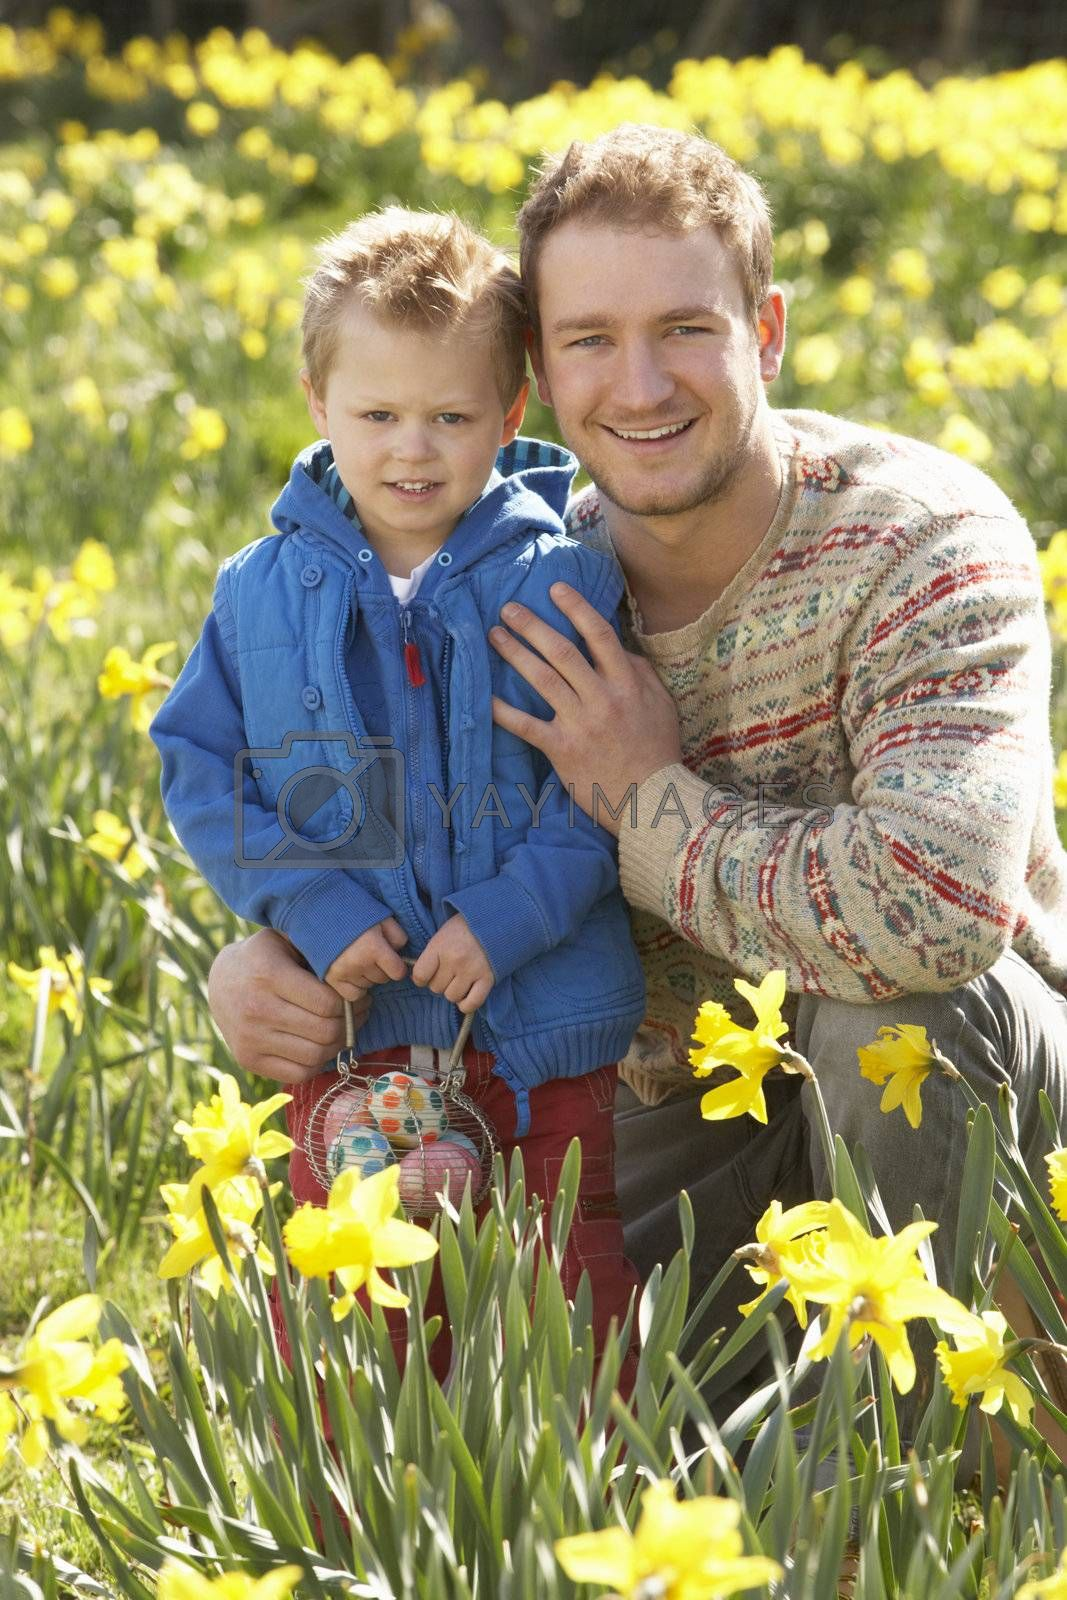 Father And Son On Easter Egg Hunt In Daffodil Field